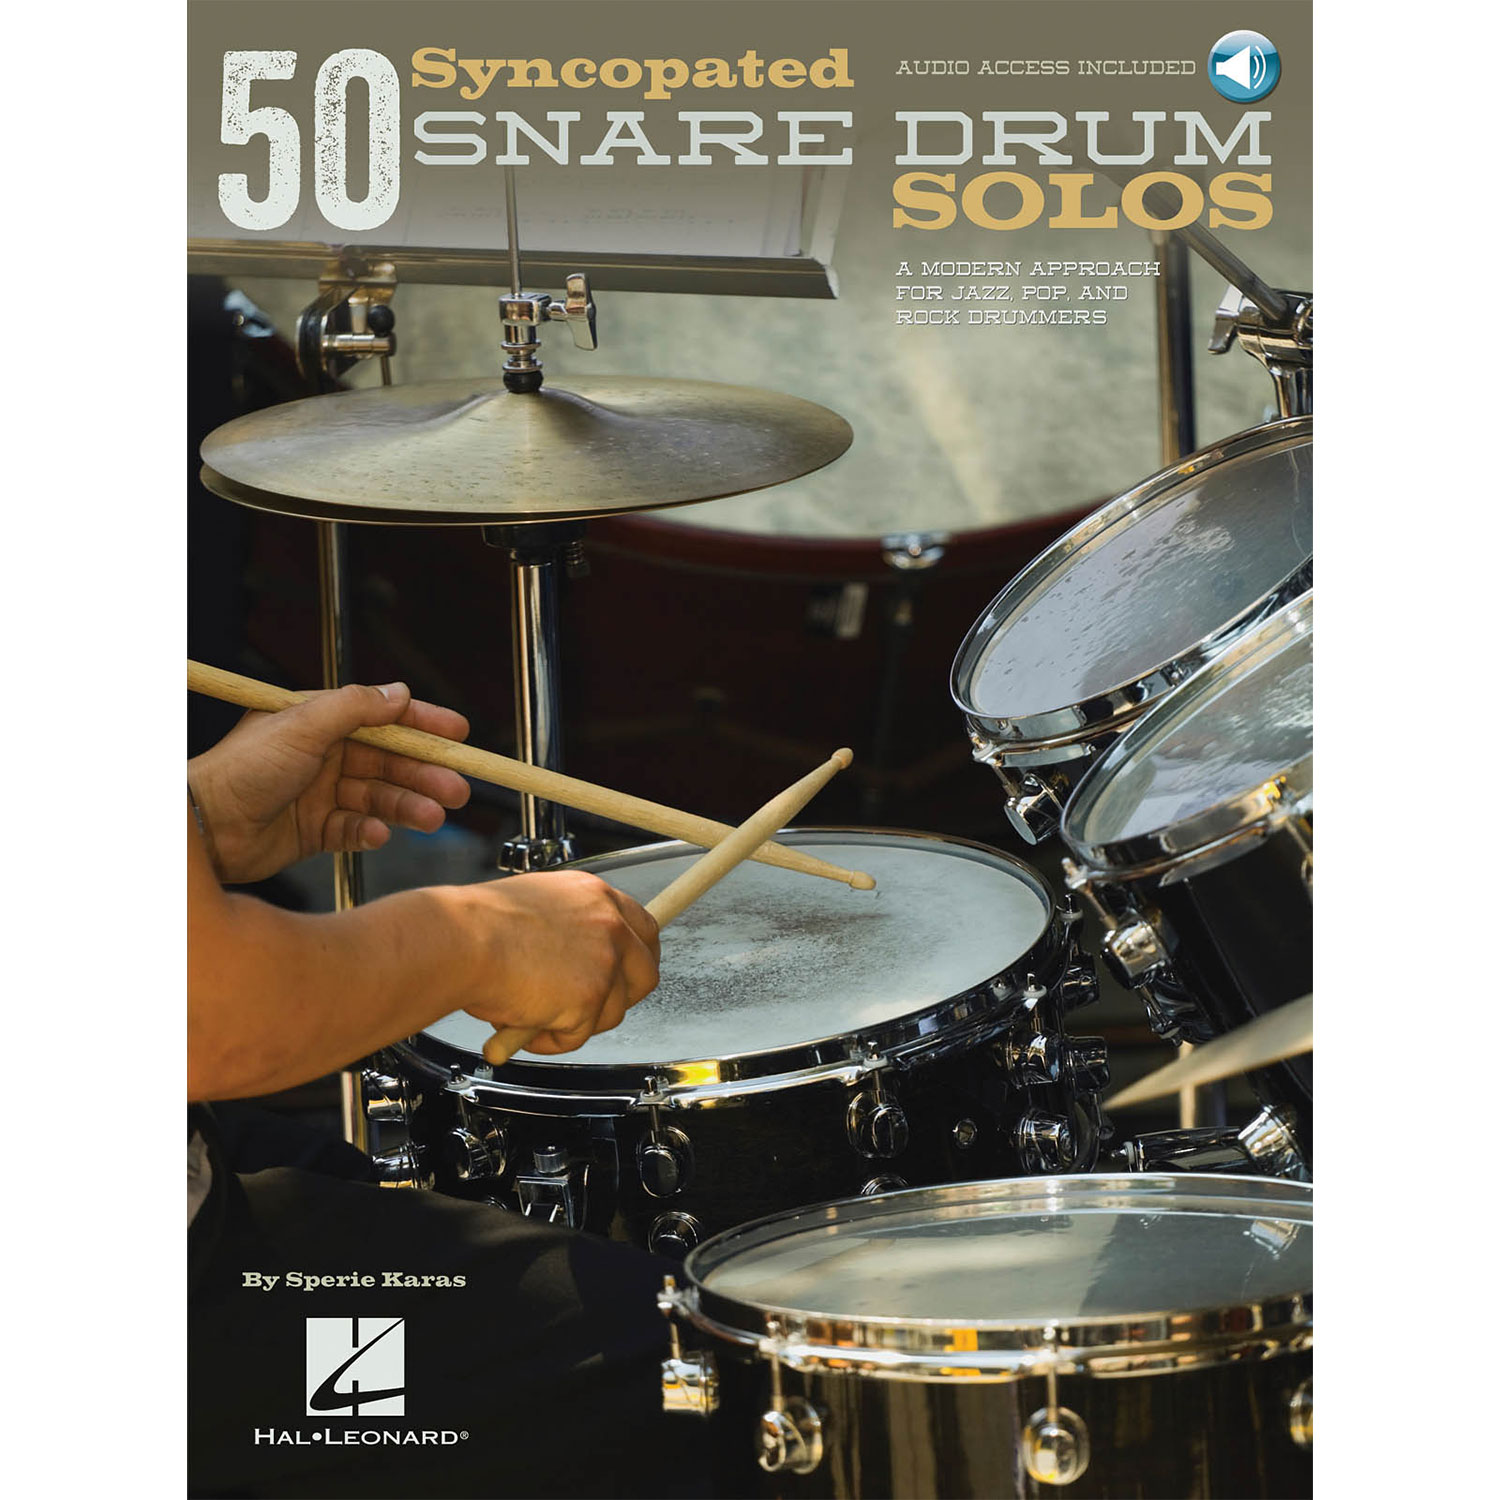 50 Syncopated Snare Drum Solos by Sperie Karas